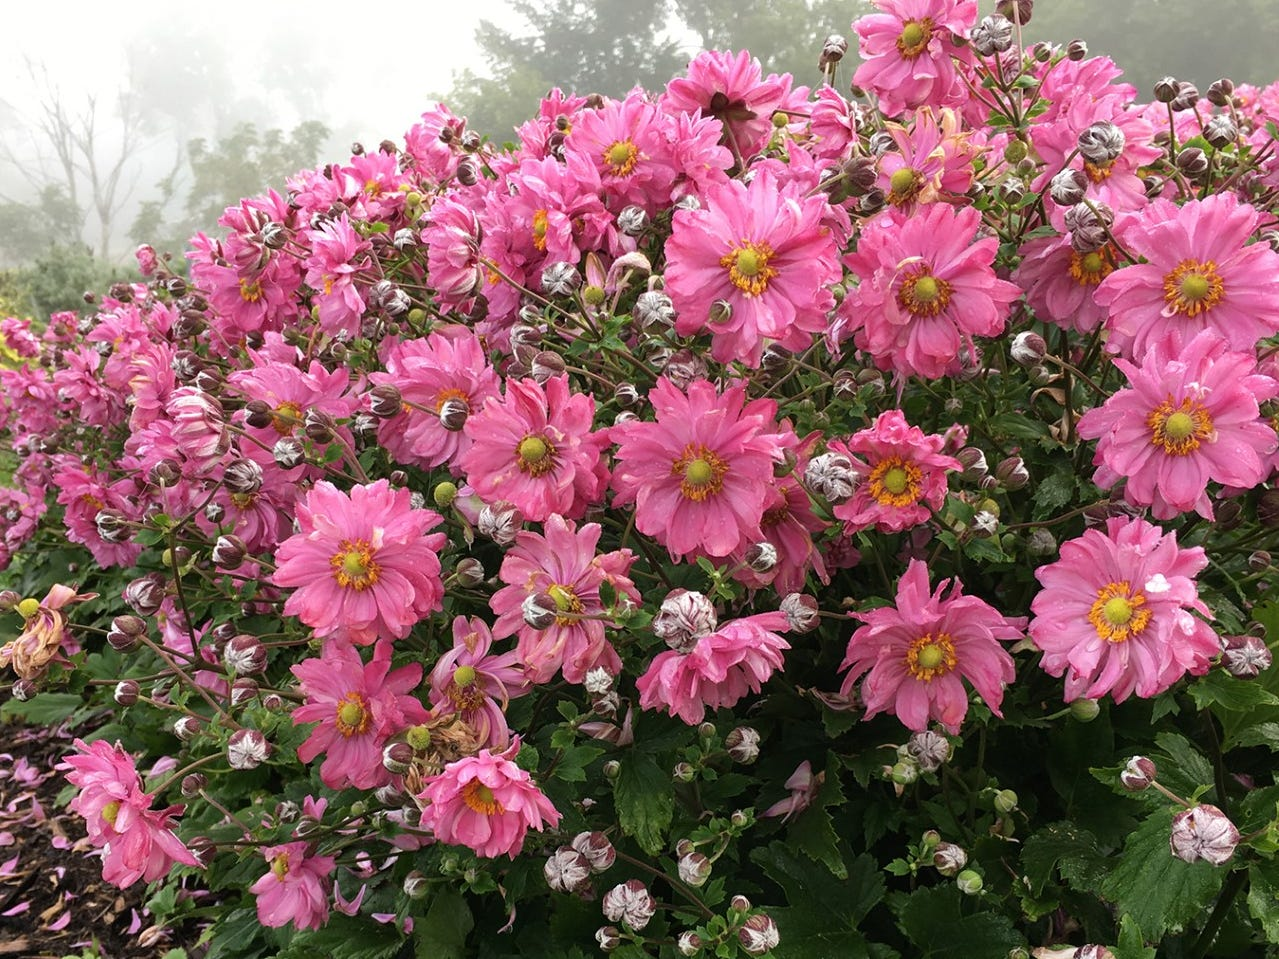 The Fall In Love Sweetly Anemone is a fall-blooming plant that will give you that burst of color your garden craves that time of year.